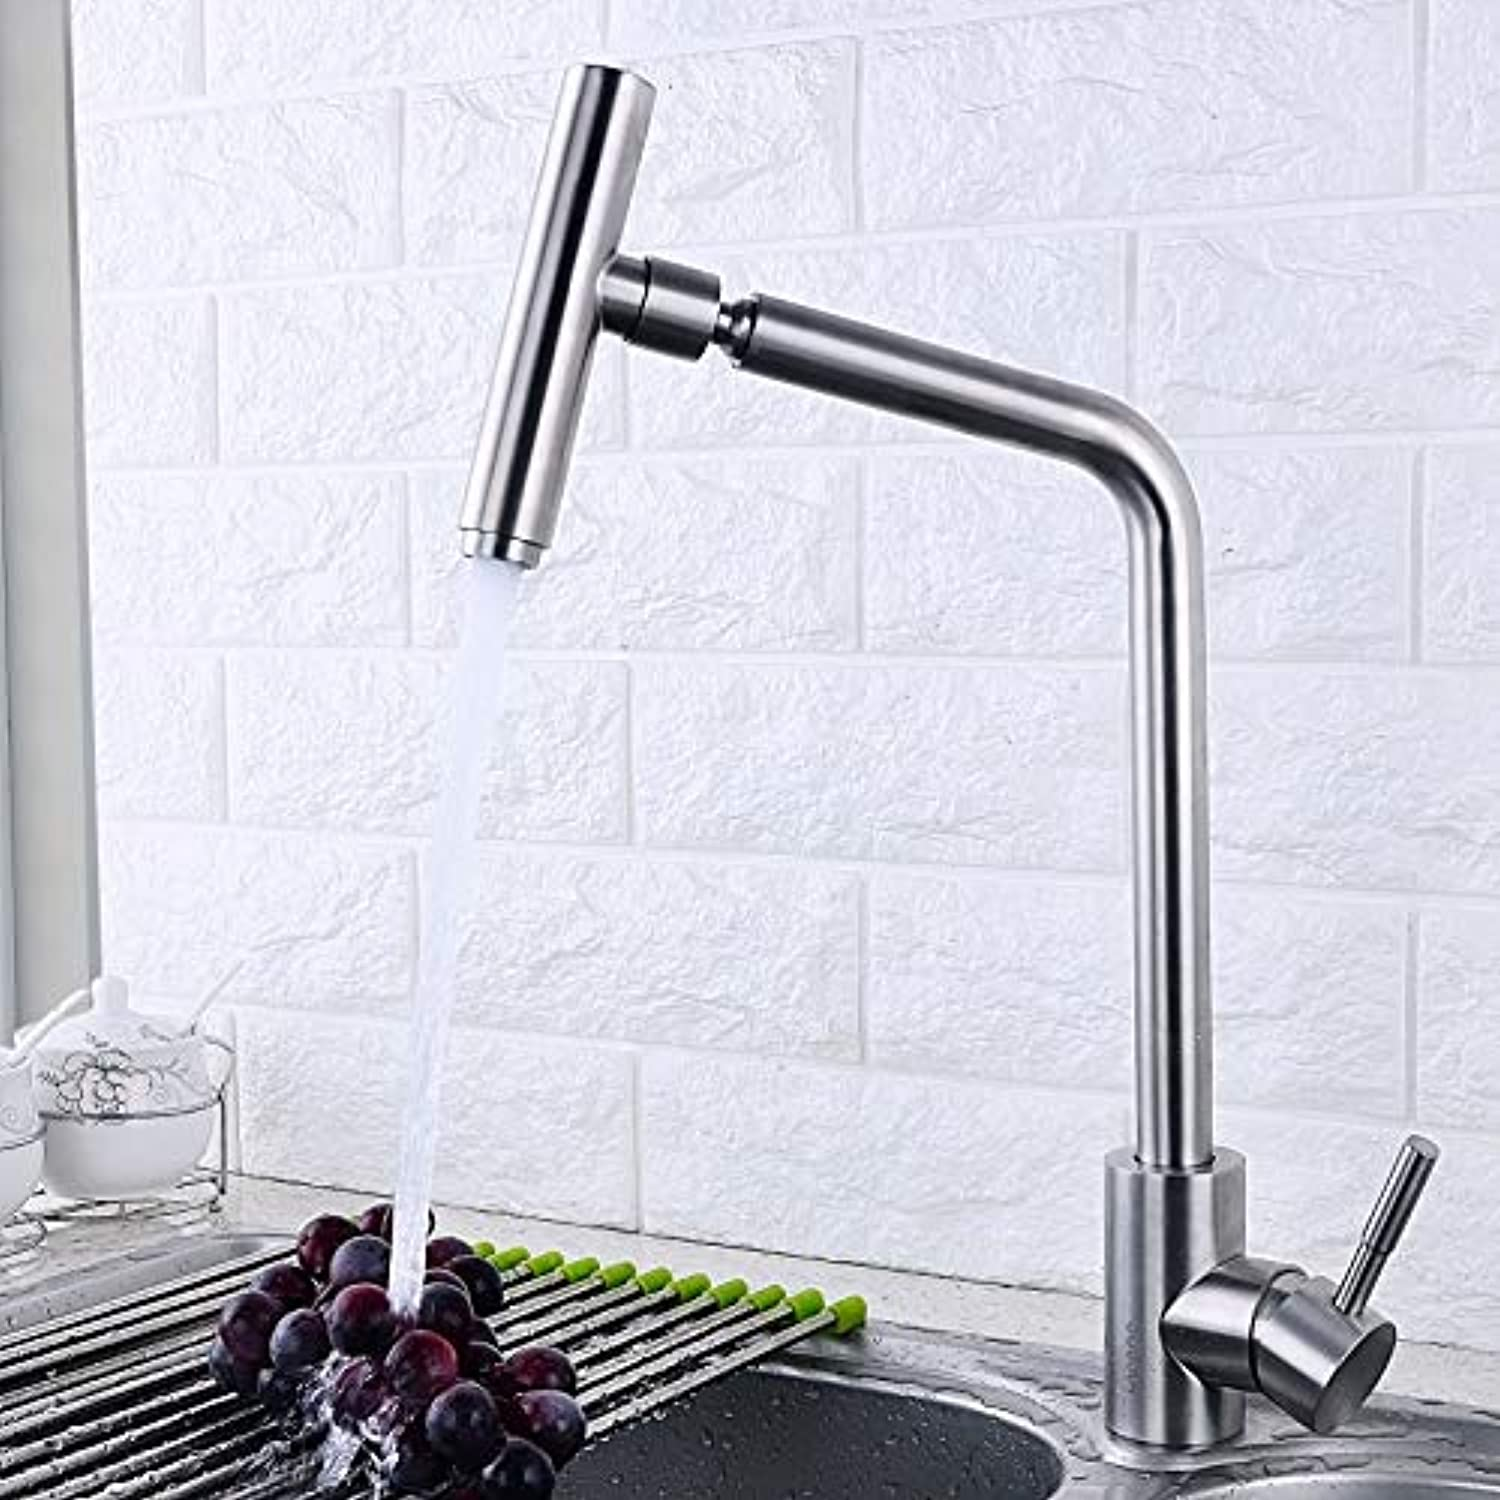 Decorry Stainless Steel Dishes Hot and Cold Taps 304 Mixer redating Tank